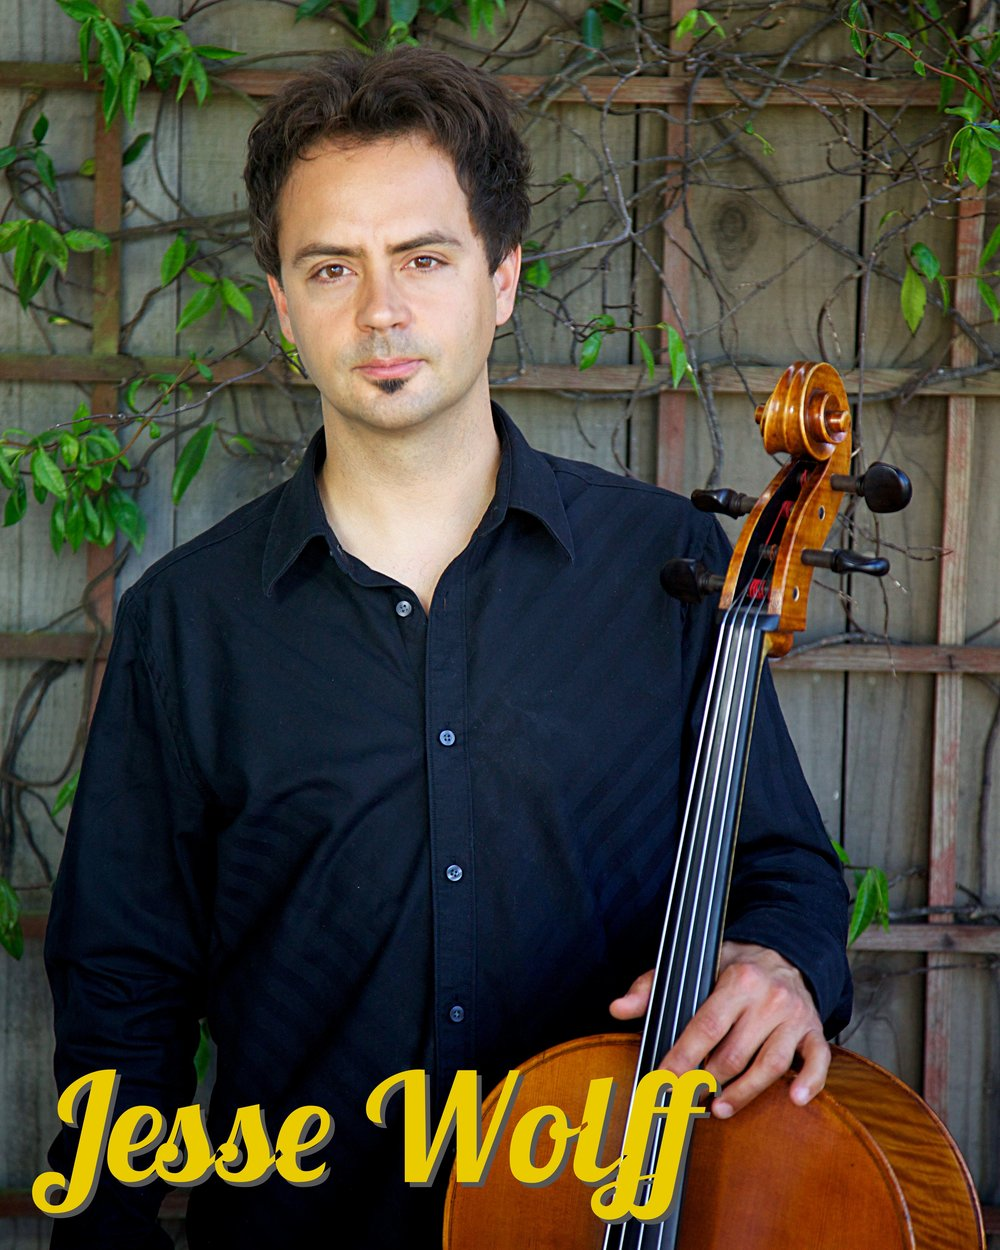 Jesse Wolff cello.jpg